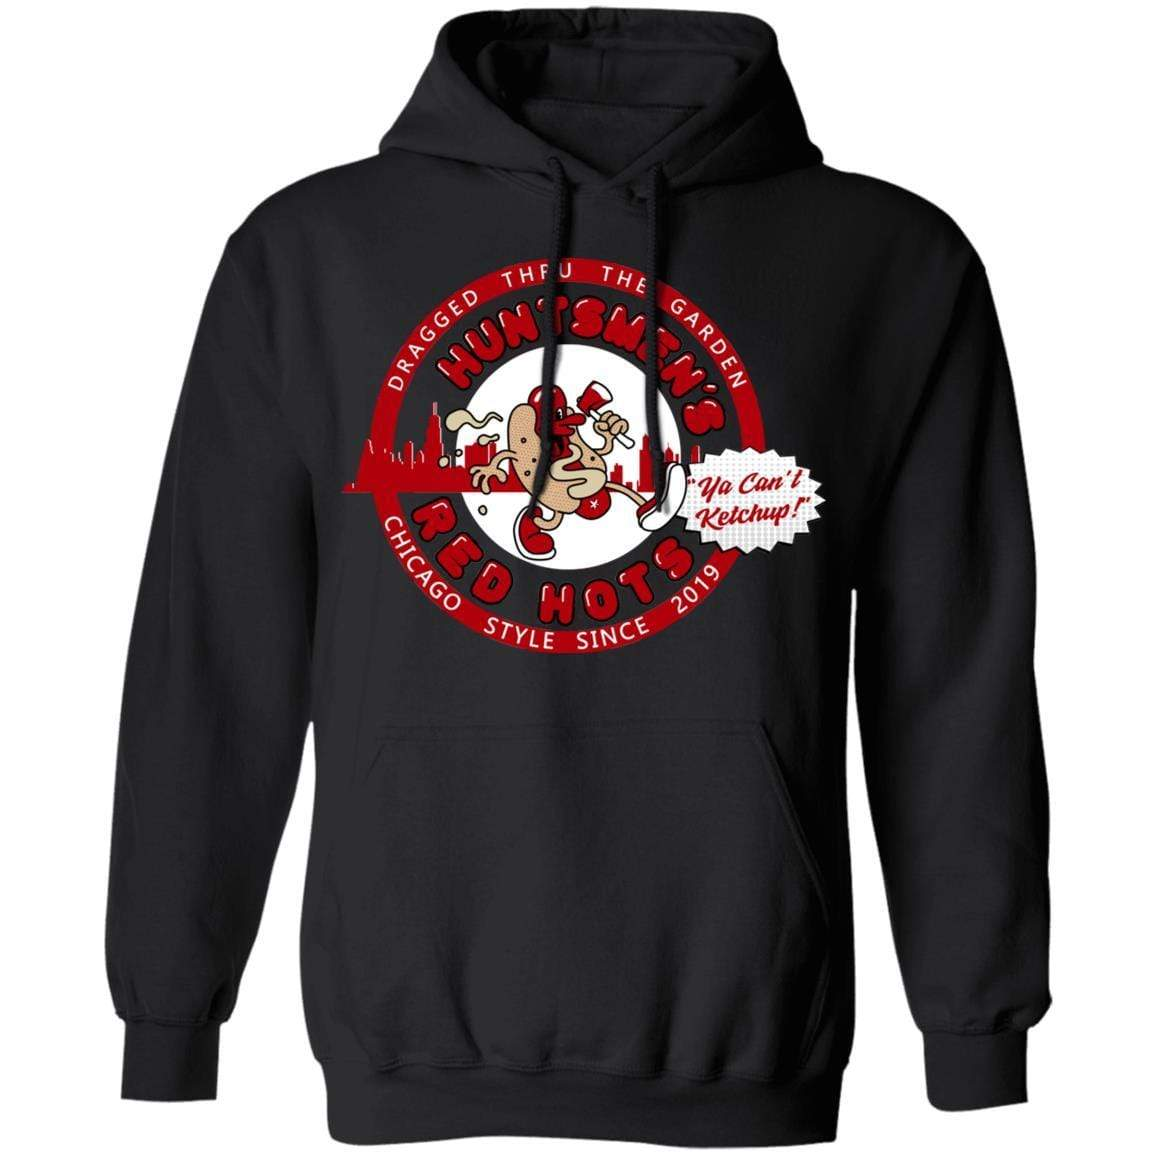 Huntsmen's Red Hots Ya Can't Ketchup Chicago Style 2019 T-Shirts, Hoodies 541-4740-88445033-23087 - Tee Ript